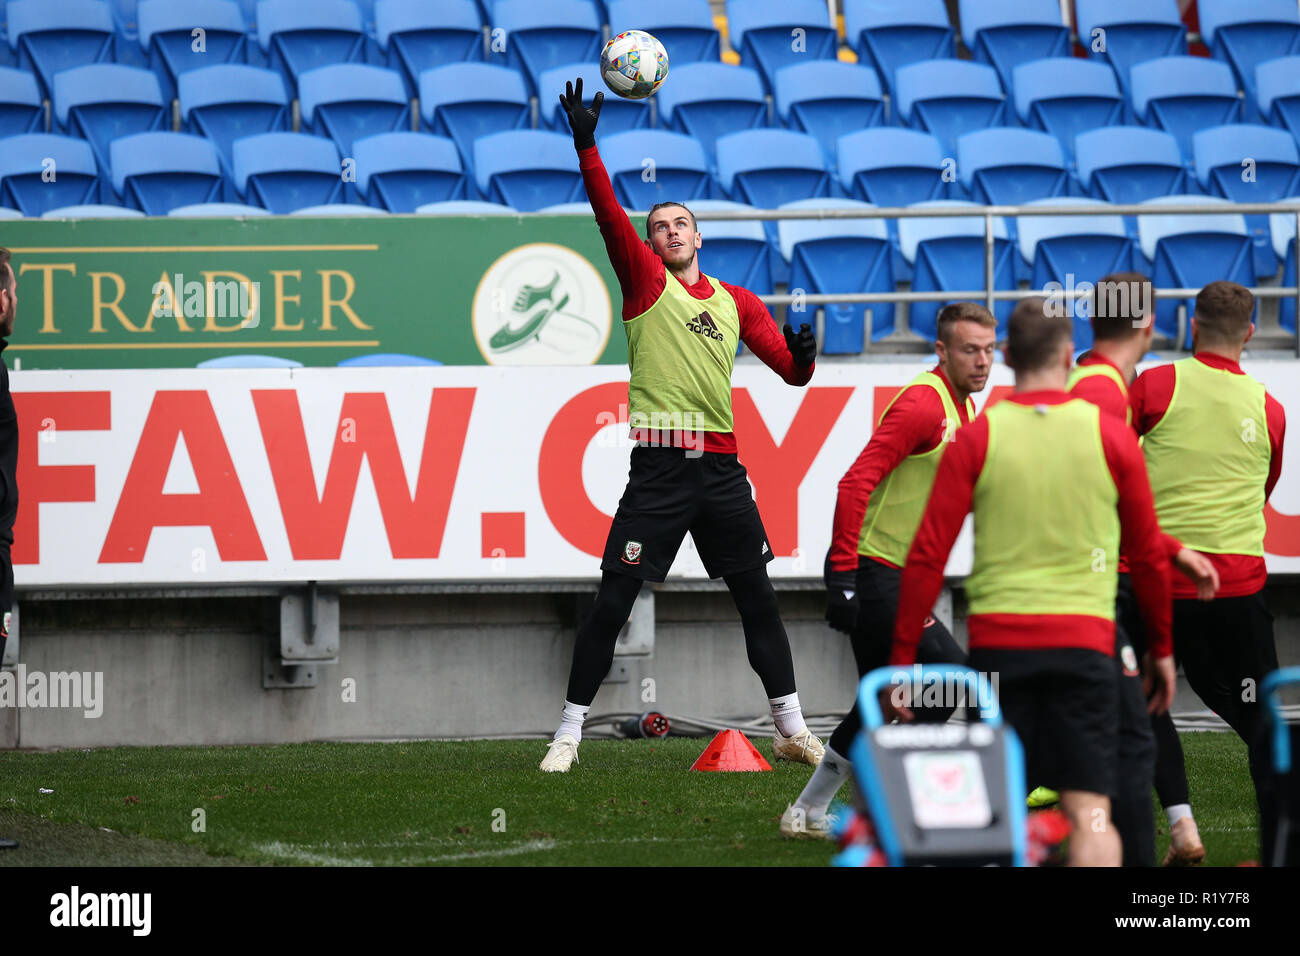 Cardiff, Wales, UK. 15th Nov 2018. Gareth Bale of Wales in action during the Wales football squad training at the Cardiff City Stadium in  Cardiff , South Wales on Thursday 15th November 2018.  the team are preparing for their UEFA Nations League match against Denmark tomorrow.   pic by Andrew Orchard/Alamy Live News Stock Photo